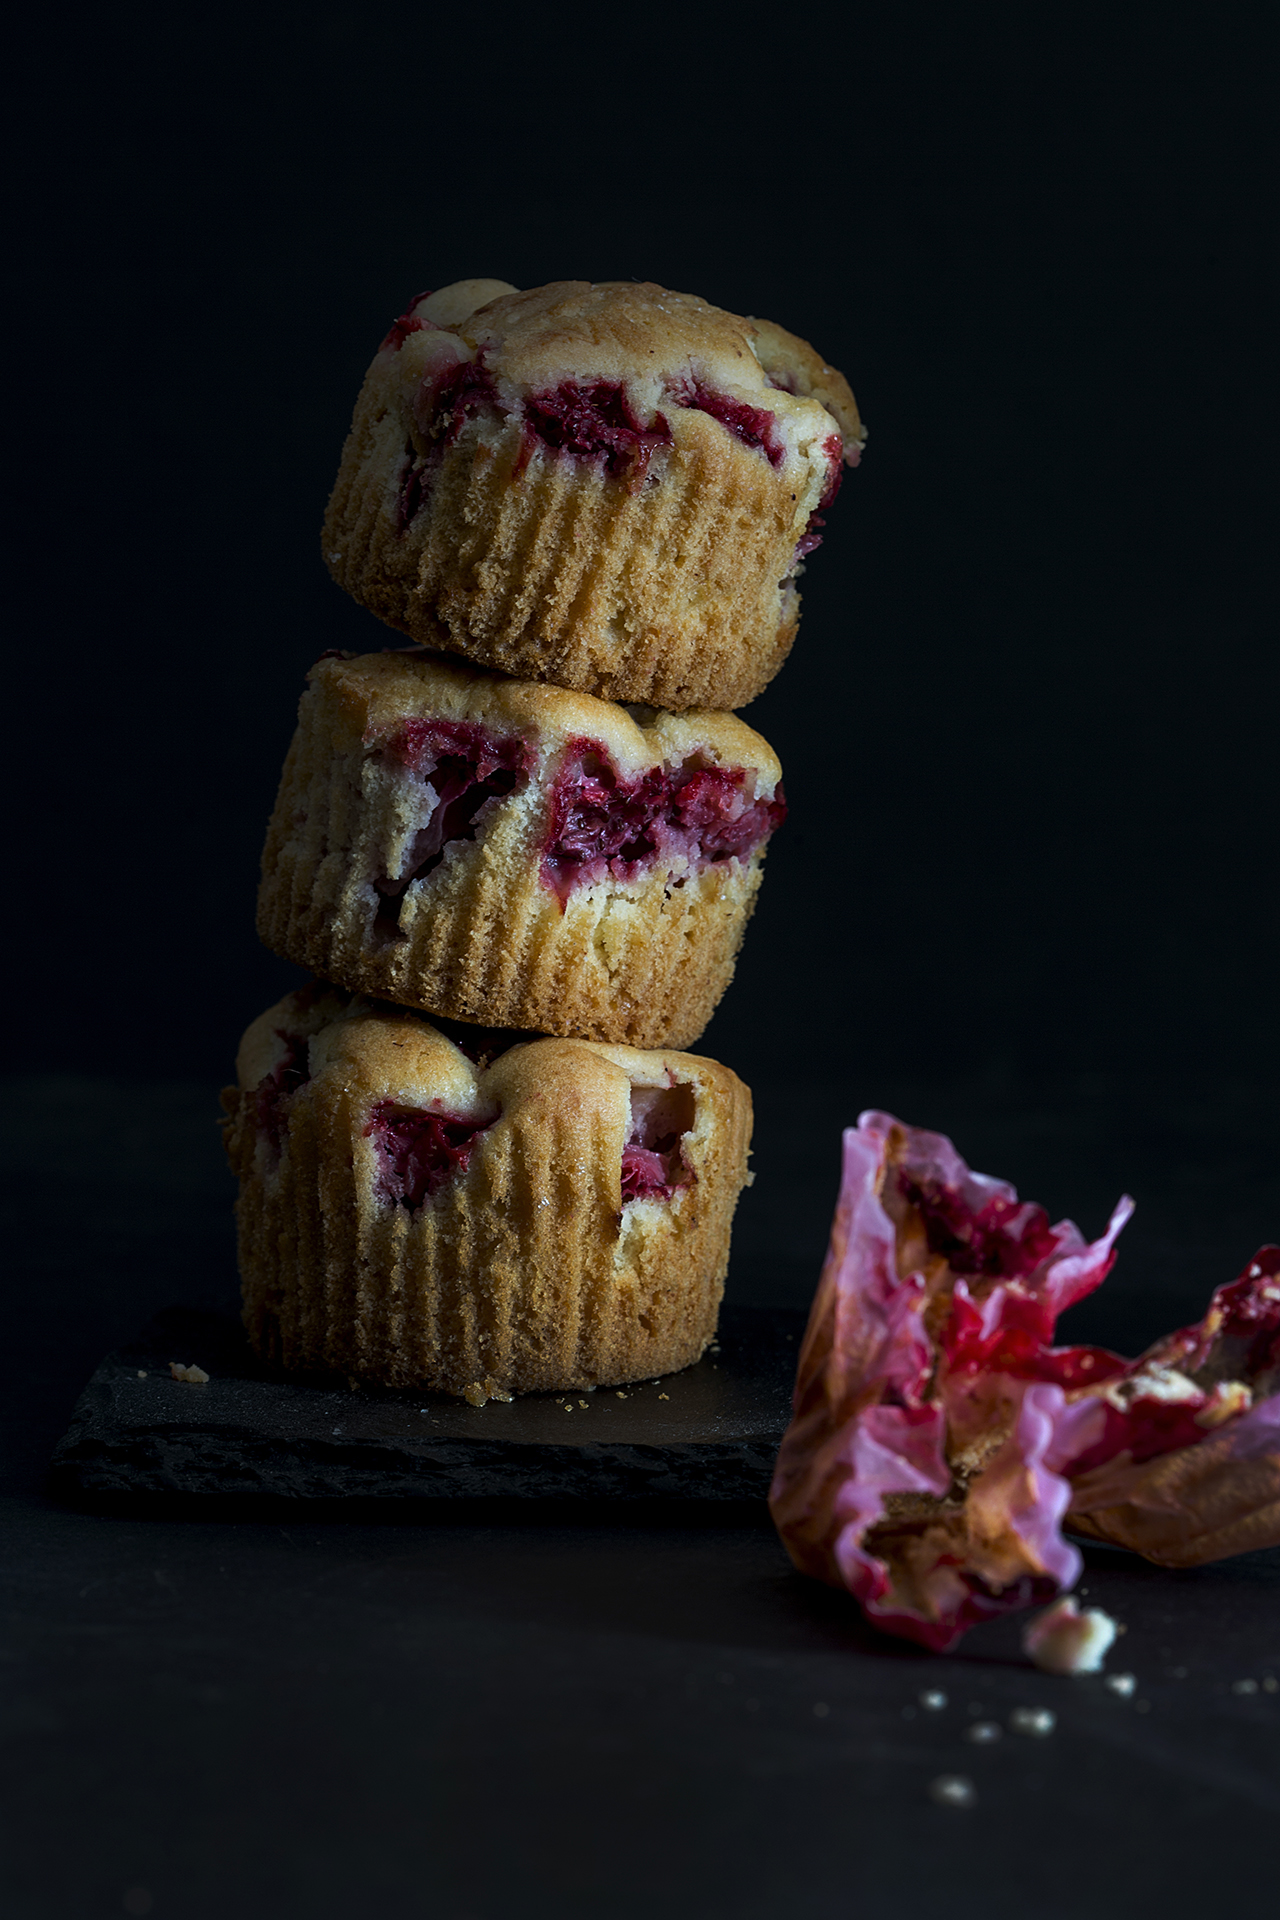 Food Photography, Muffins, Food photographer UK, Liverpool, Leeds, London, Manchester, Commercial Photographer